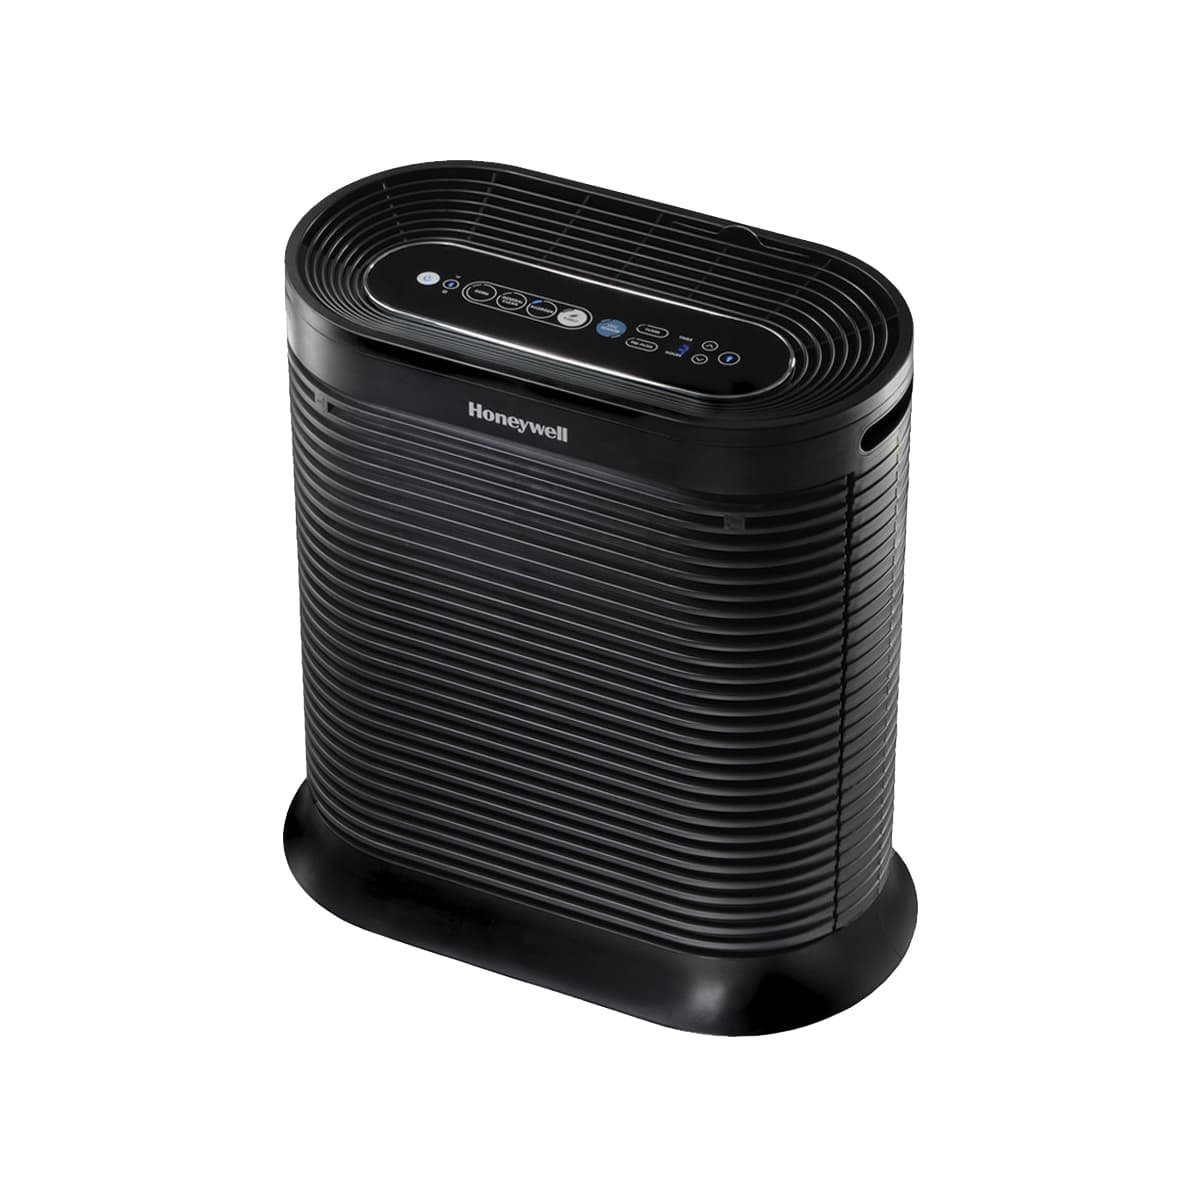 Honeywell HPA-250B Bluetooth Air Purifier (Black)